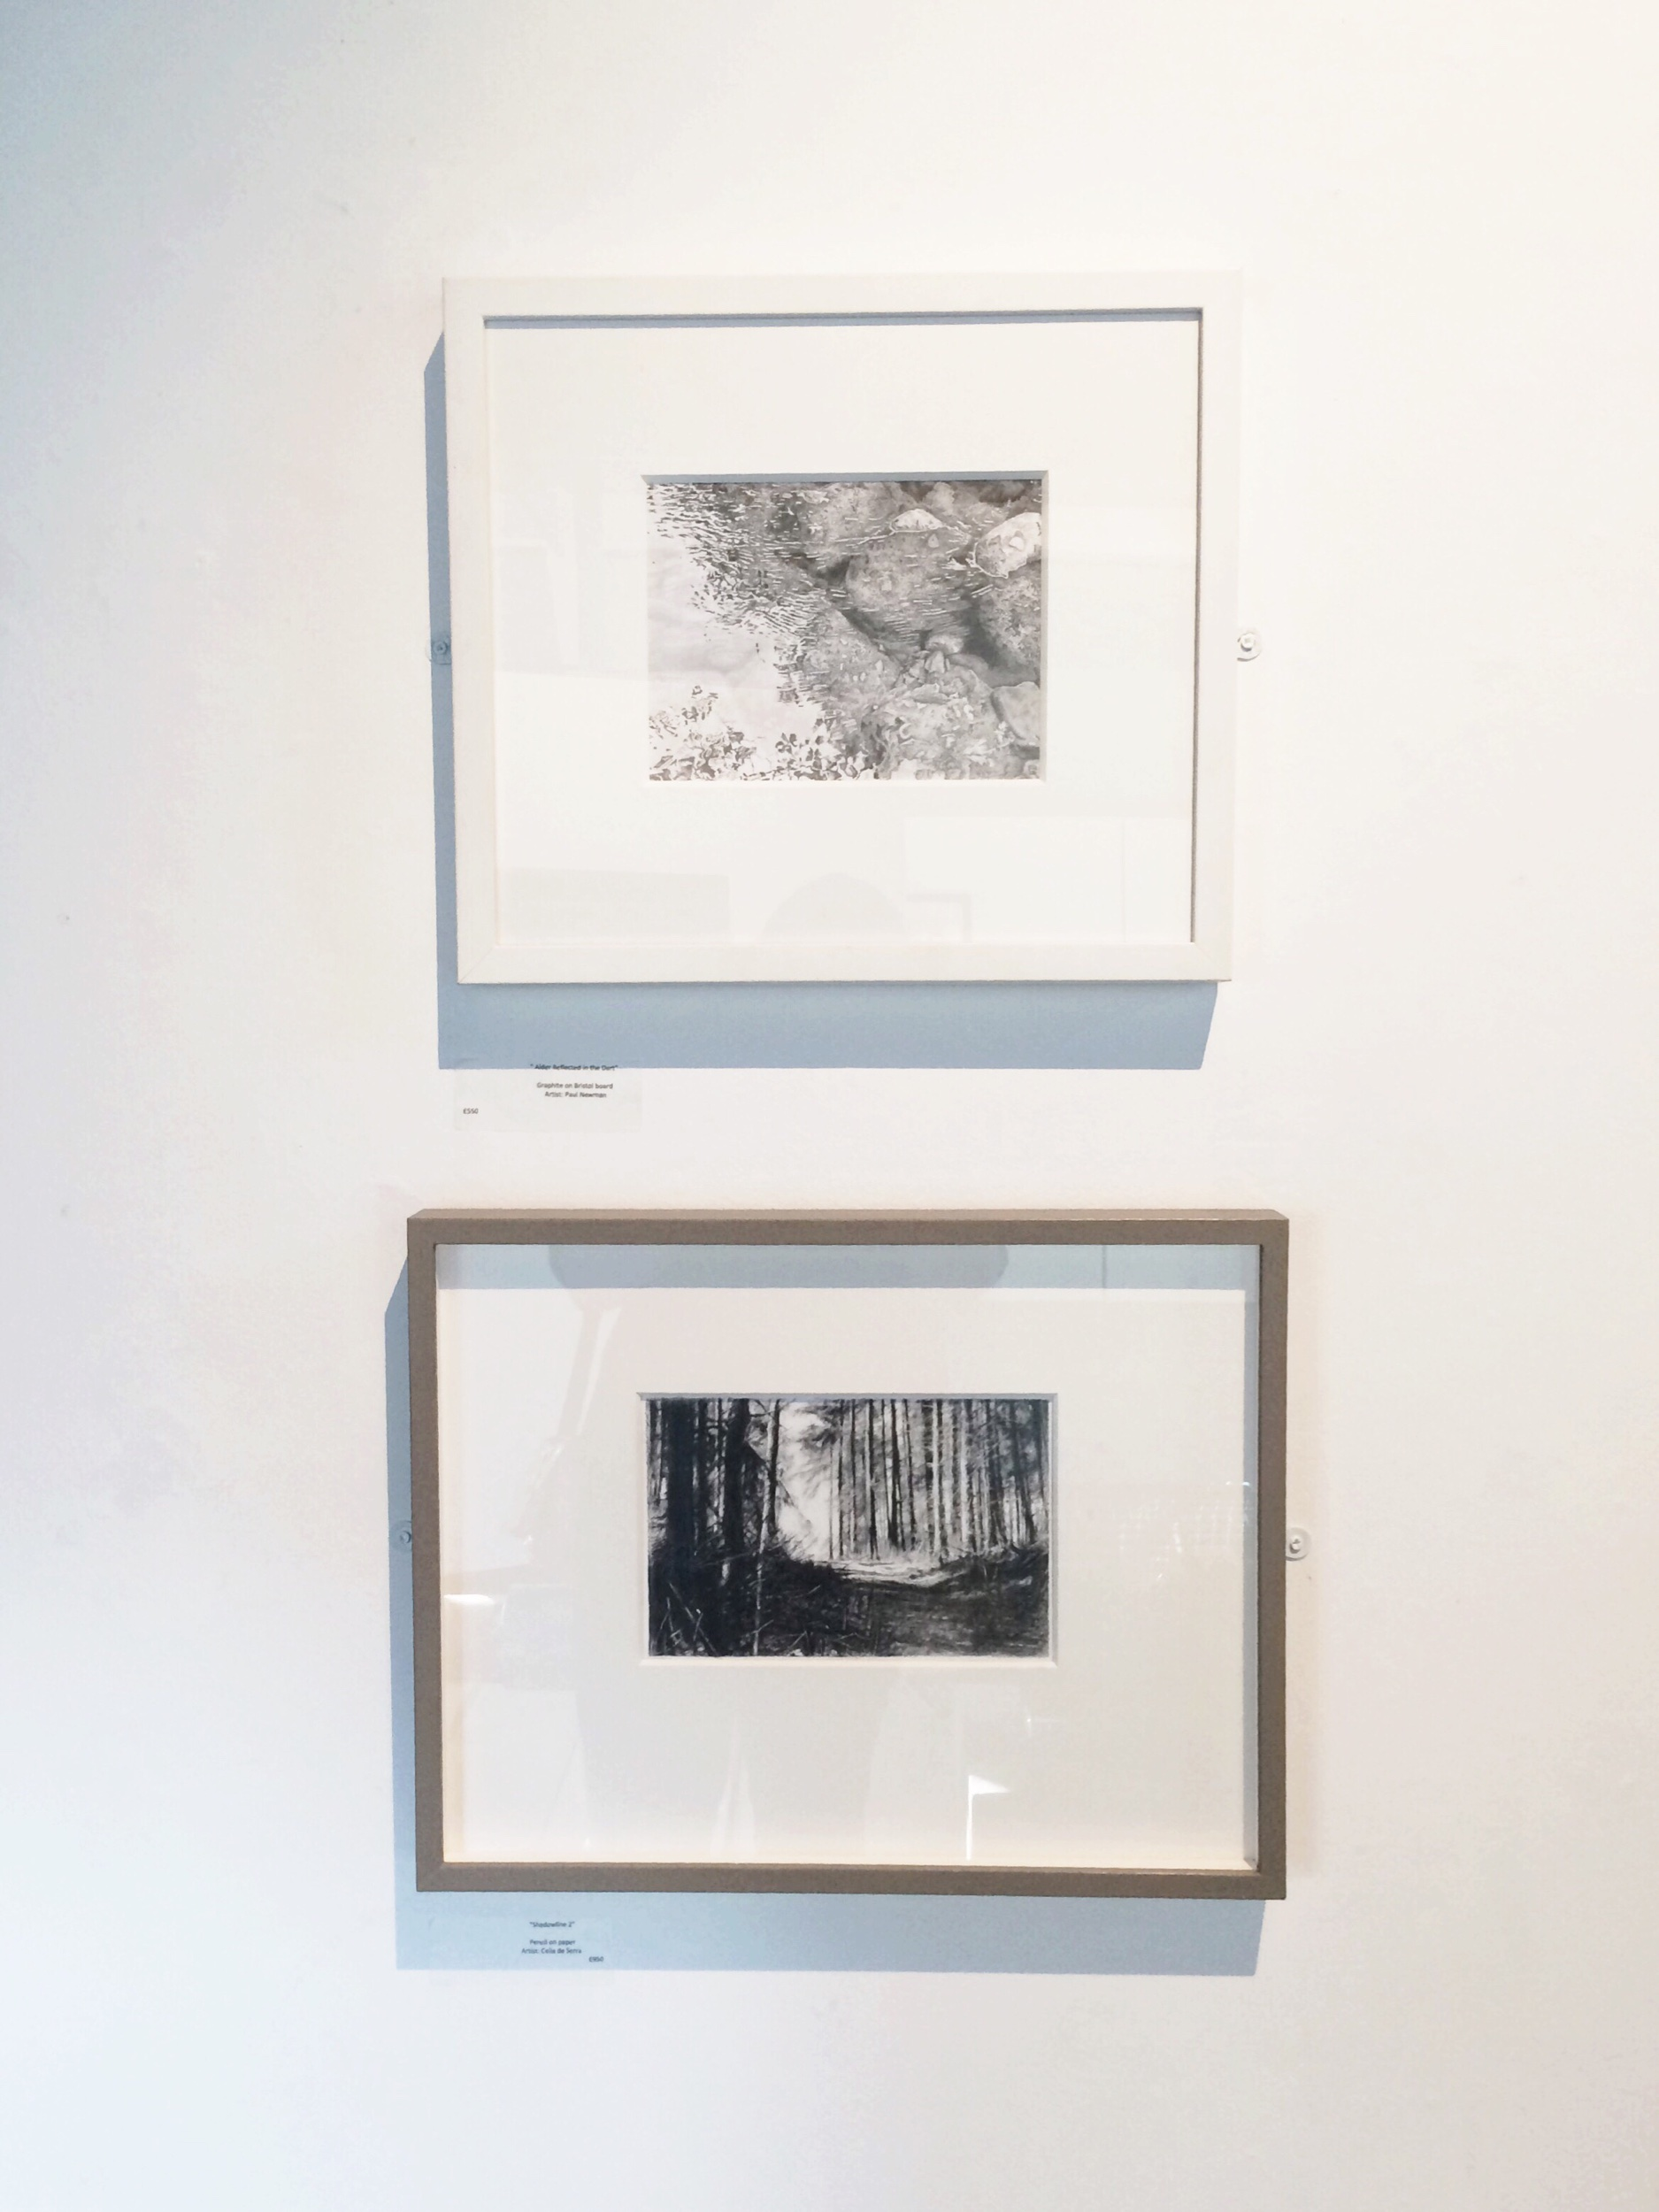 Above: Alders Reflected in the Dart, graphite on board by Paul Newman | Below: Shadowline 2, pencil on paper by Celia de Serra